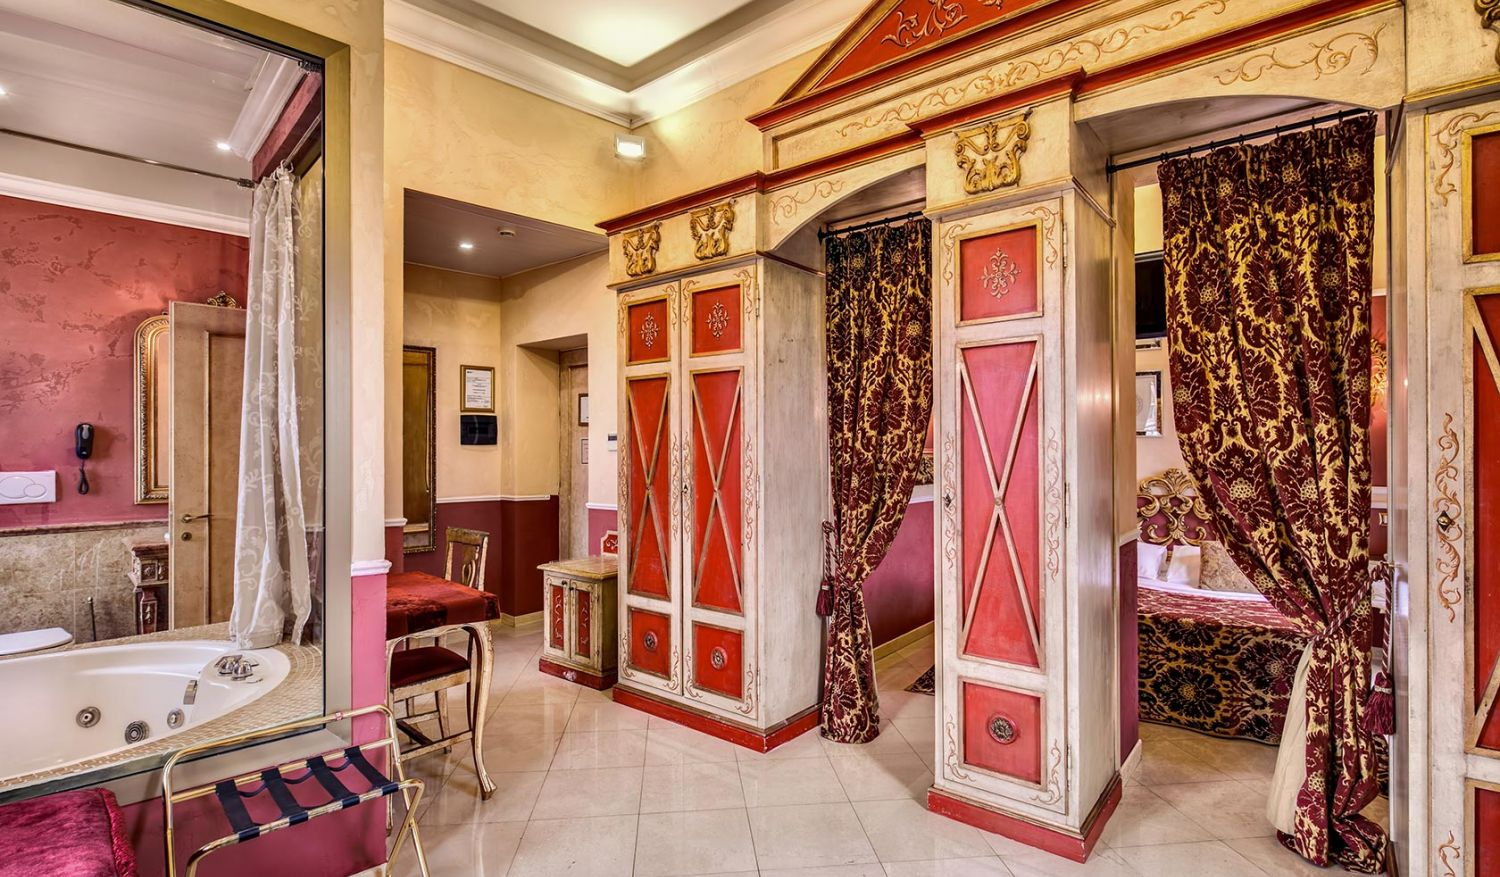 Elegant suites near the center of Rome